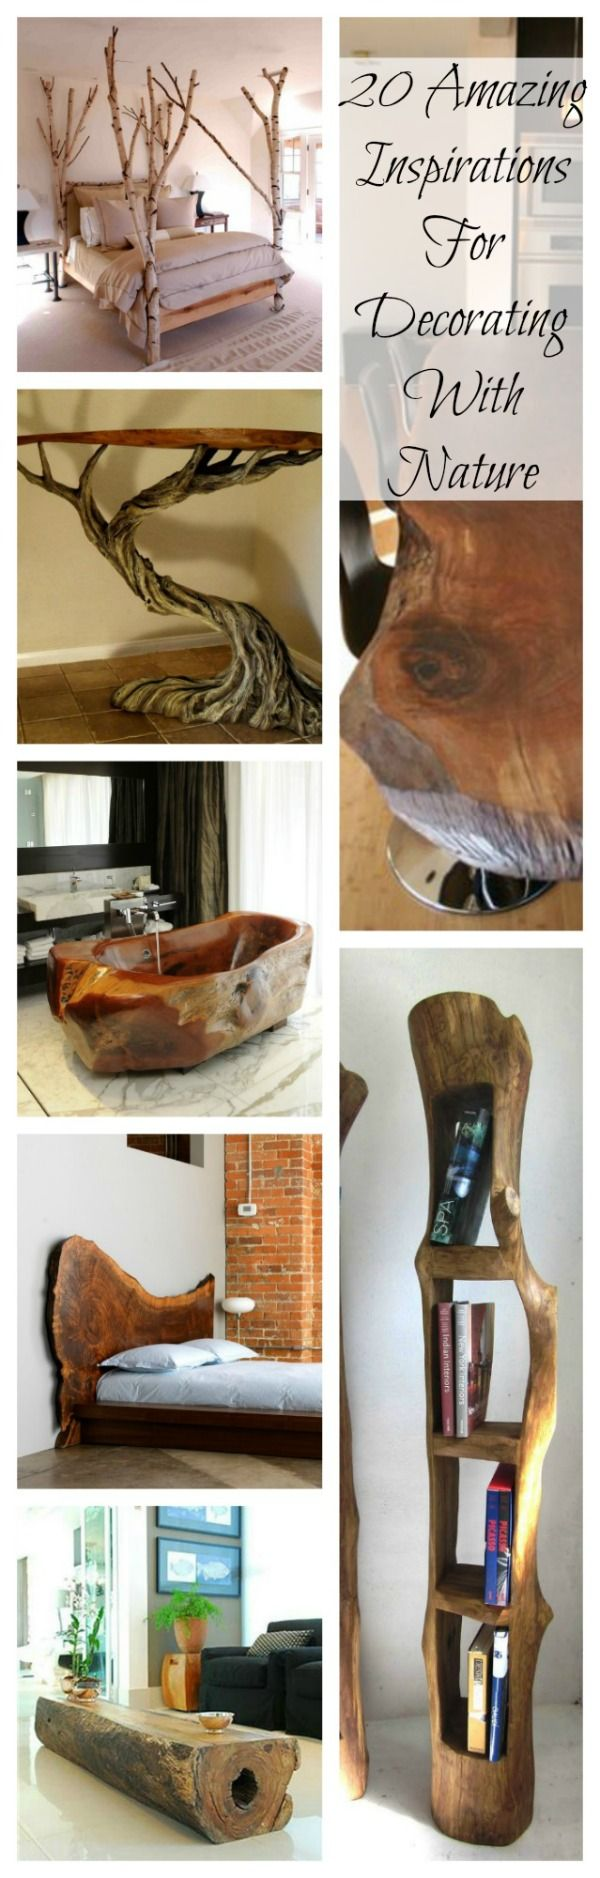 trucker hats 20 AMAZING IDEAS FOR DECORATING WITH NATURE | Nature, Inspiration and Bath Tubs